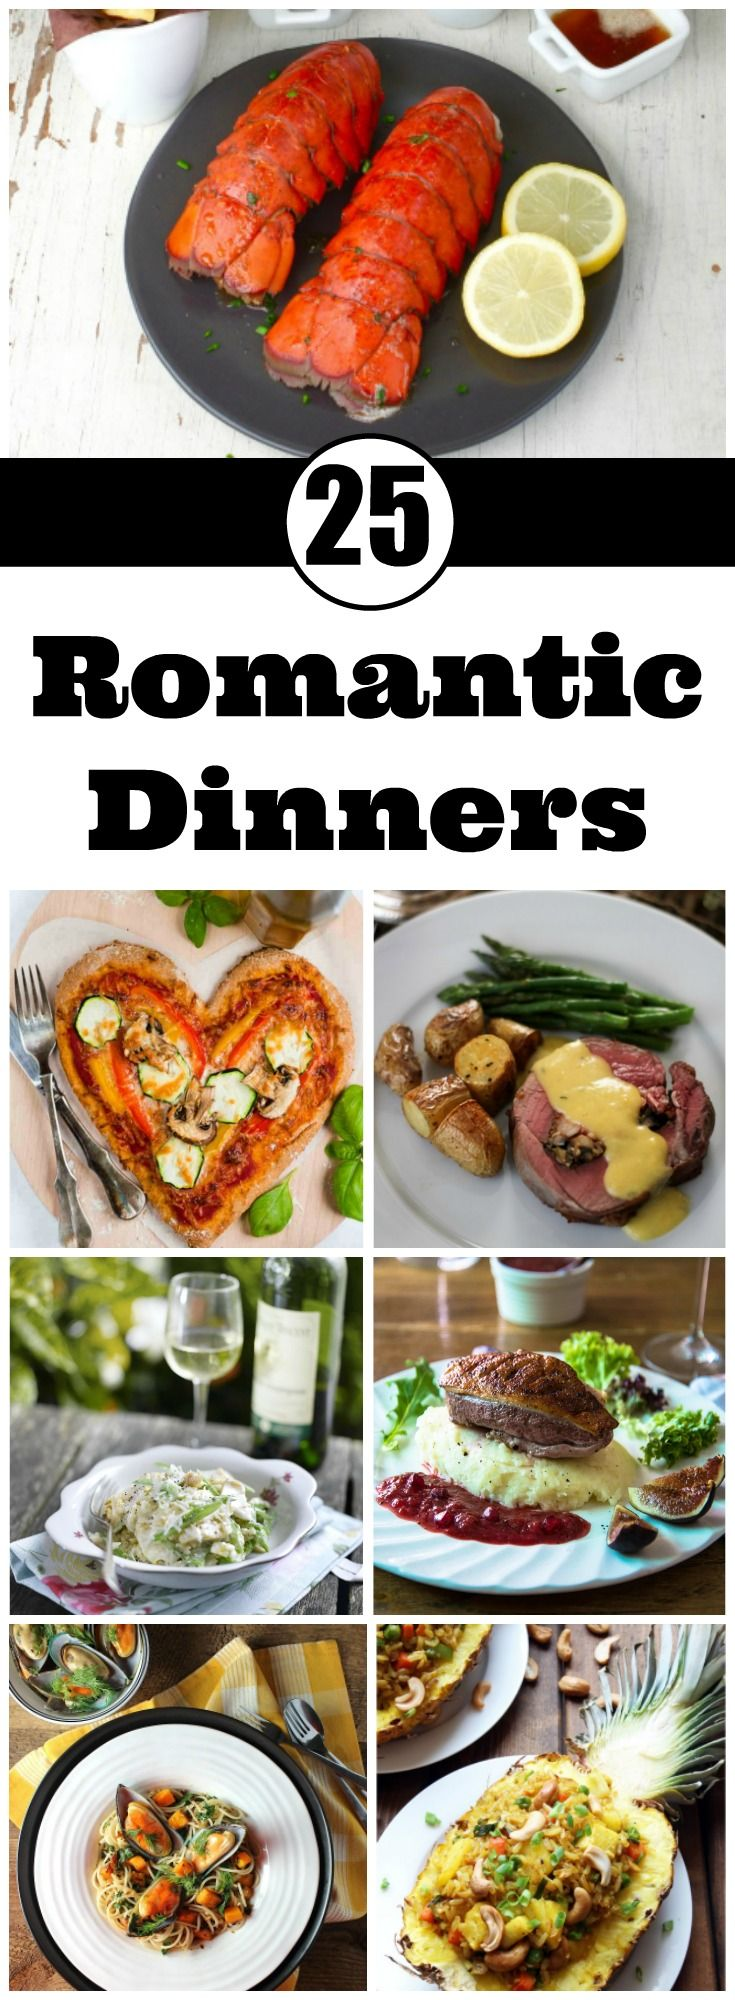 25 Romantic Dinners To Fall In Love All Over Again